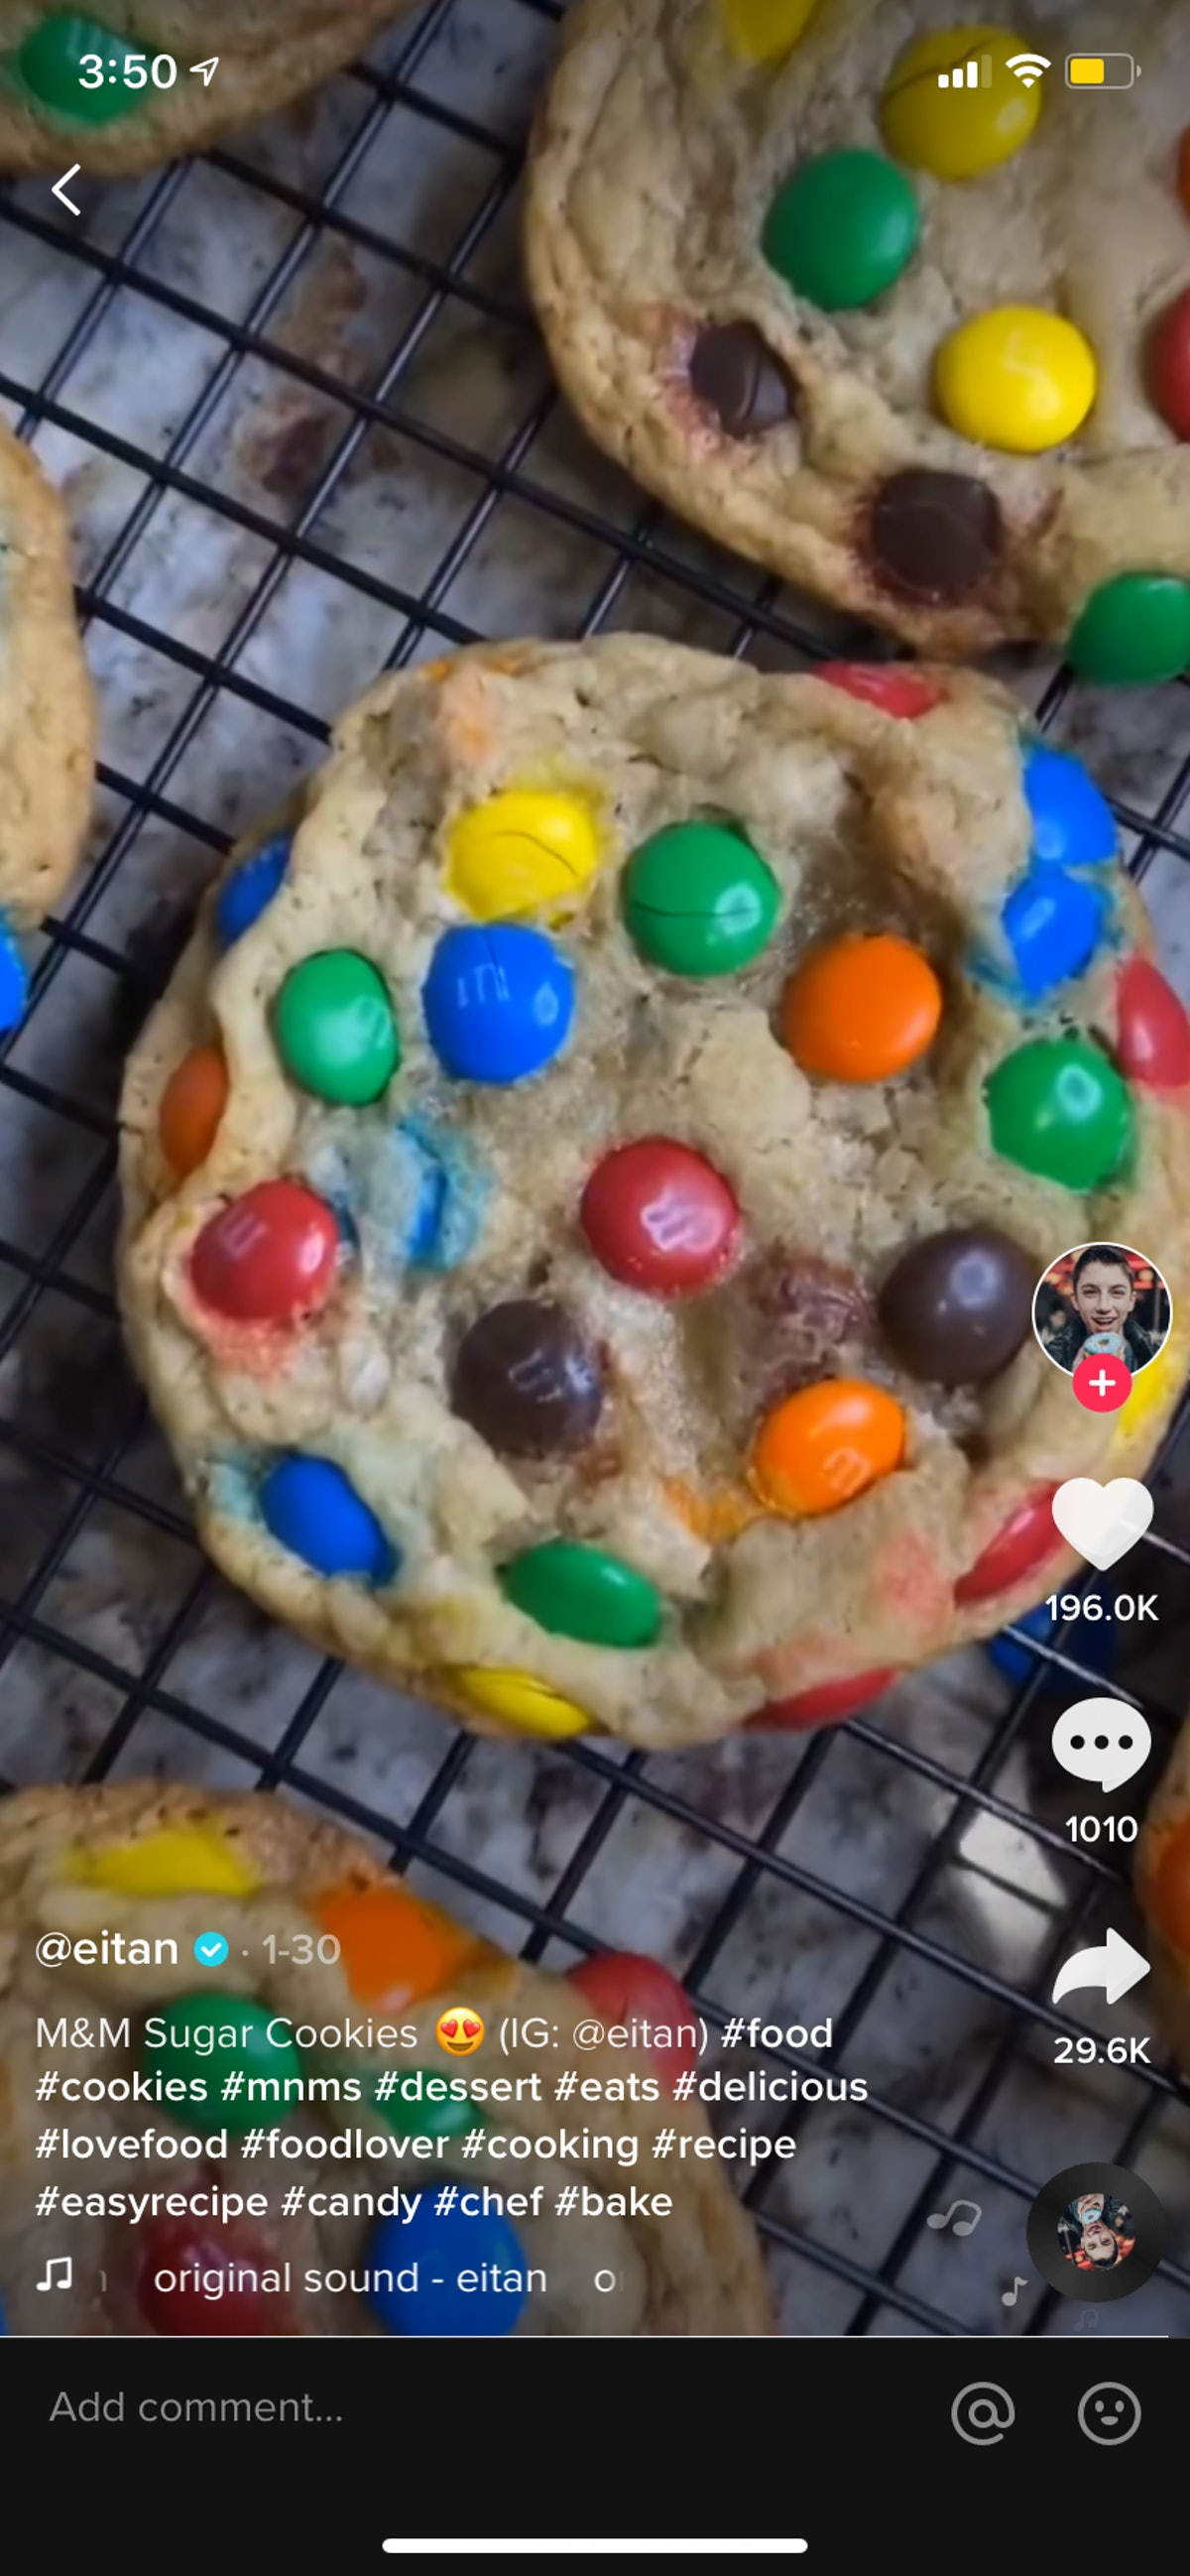 M&M sugar cookies sit on a cooling rack in a TikTok video.